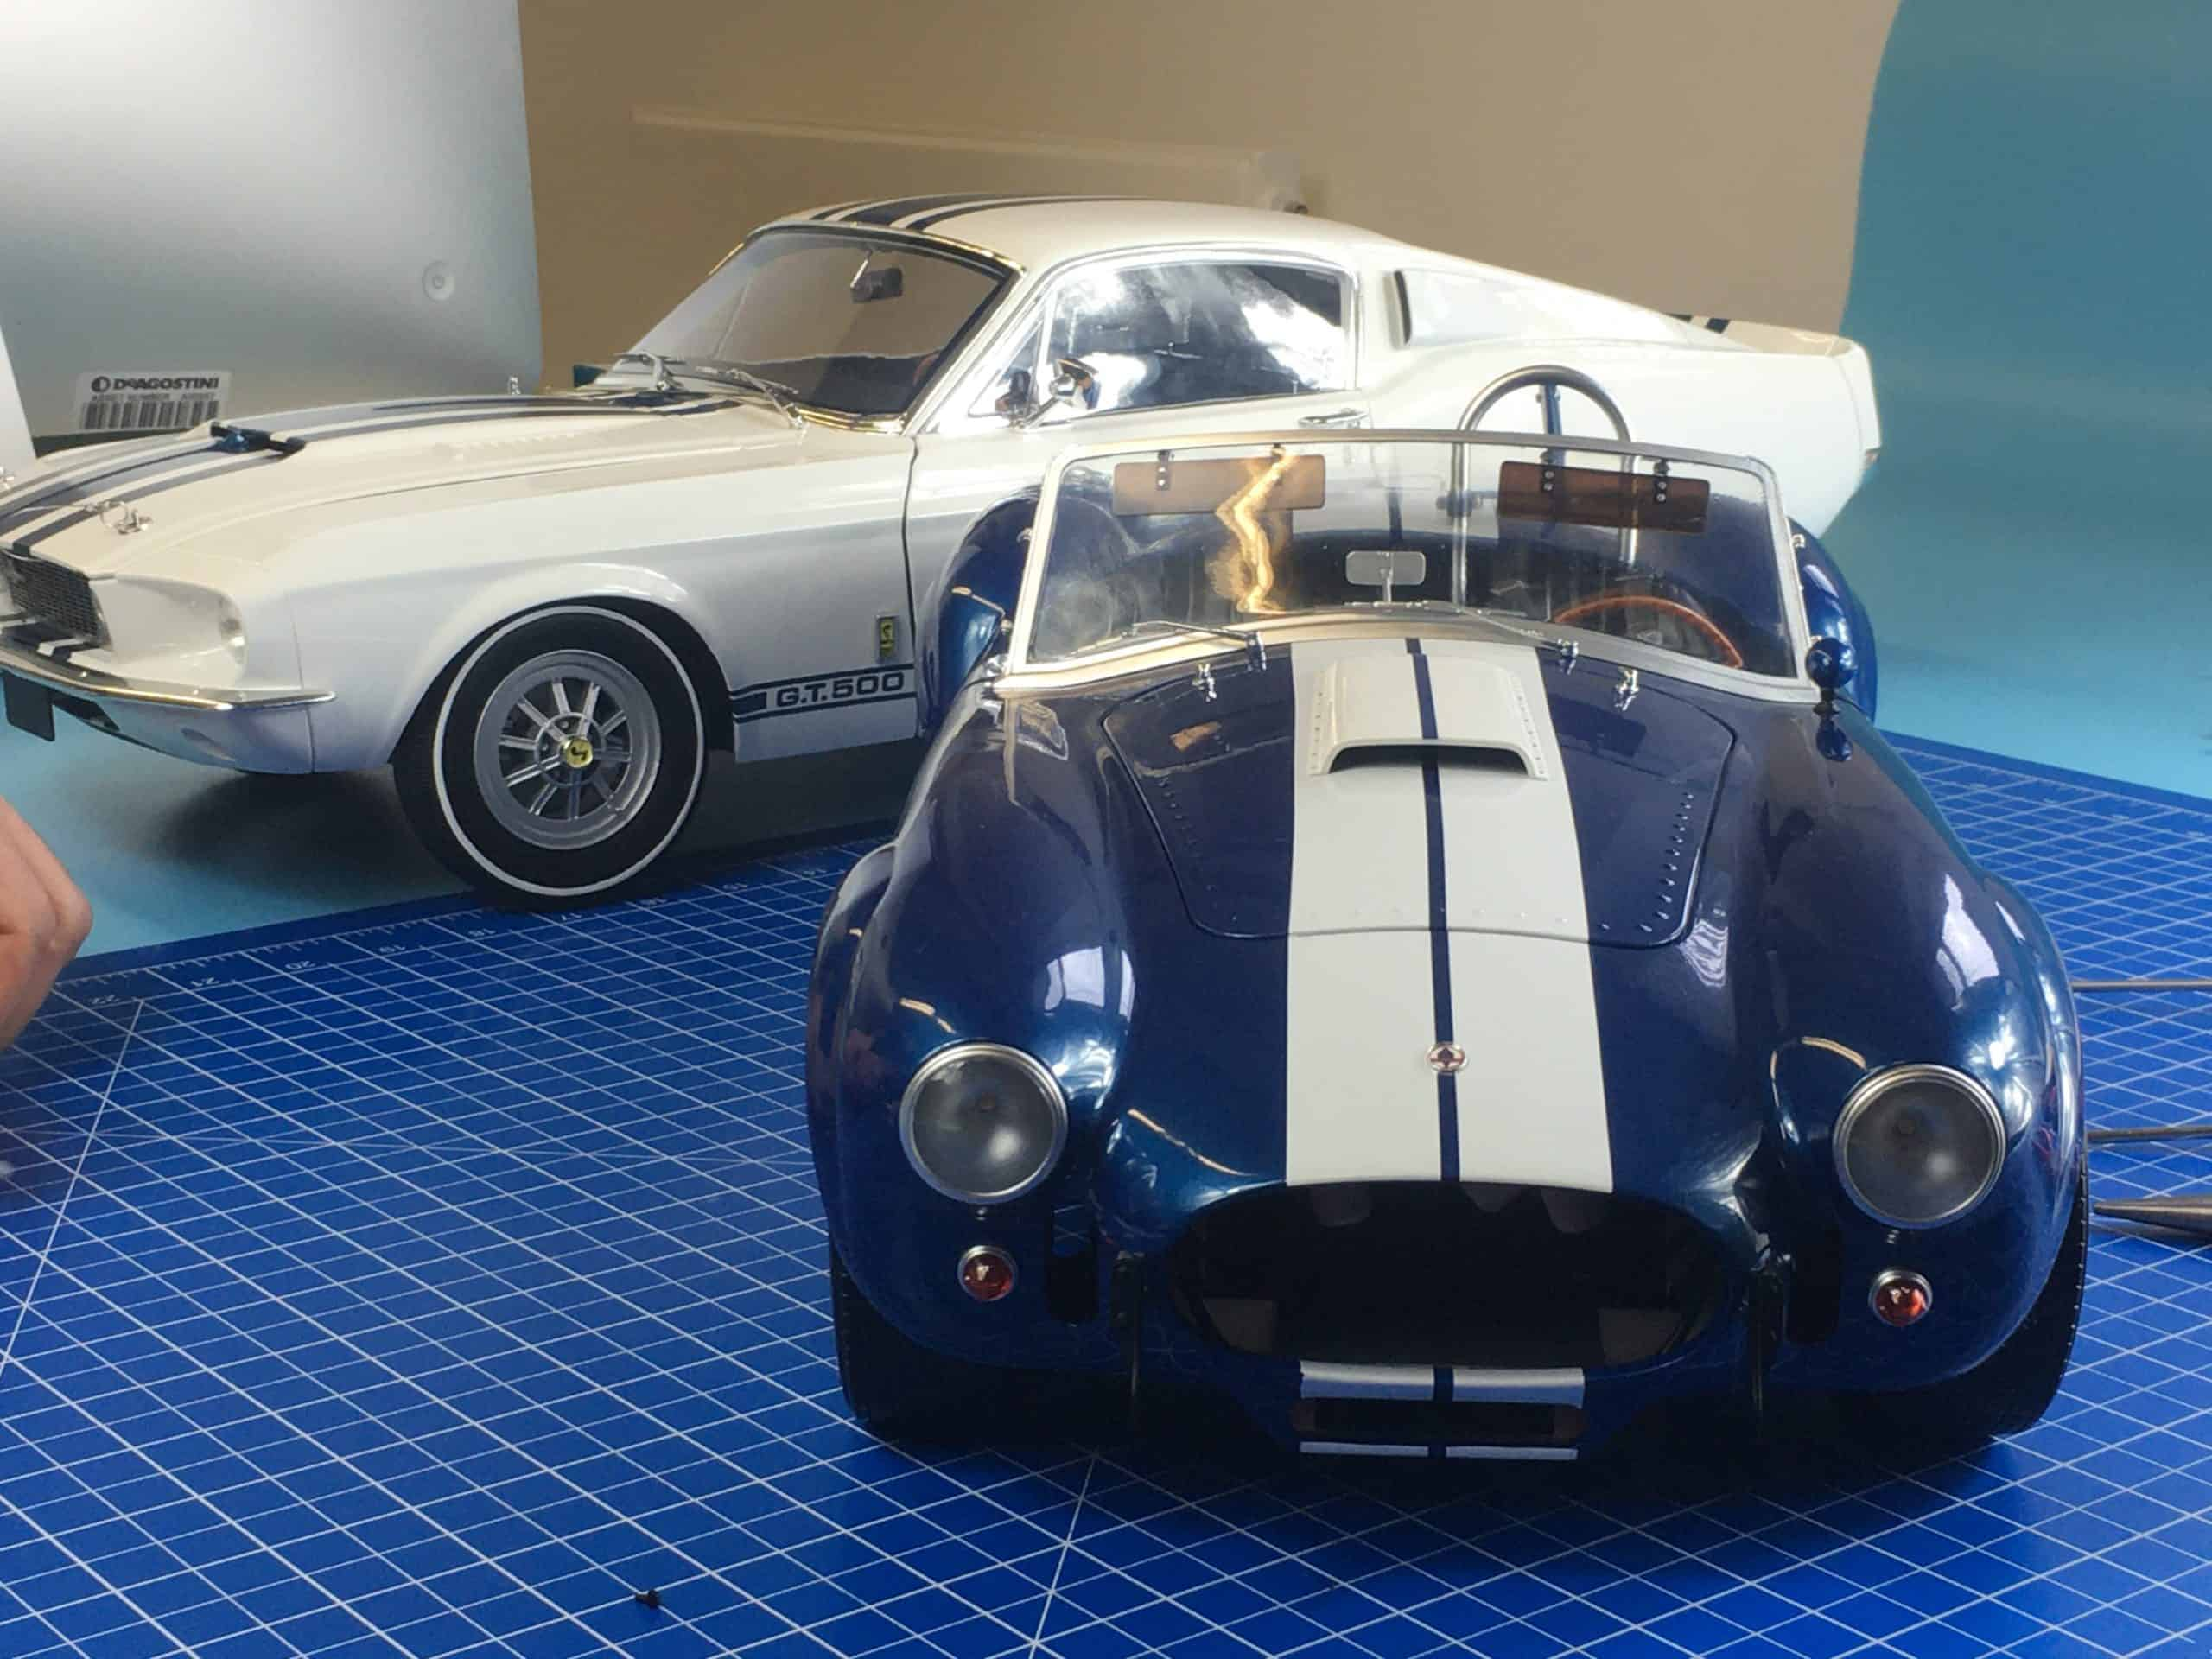 How the Cobra got its Stripes